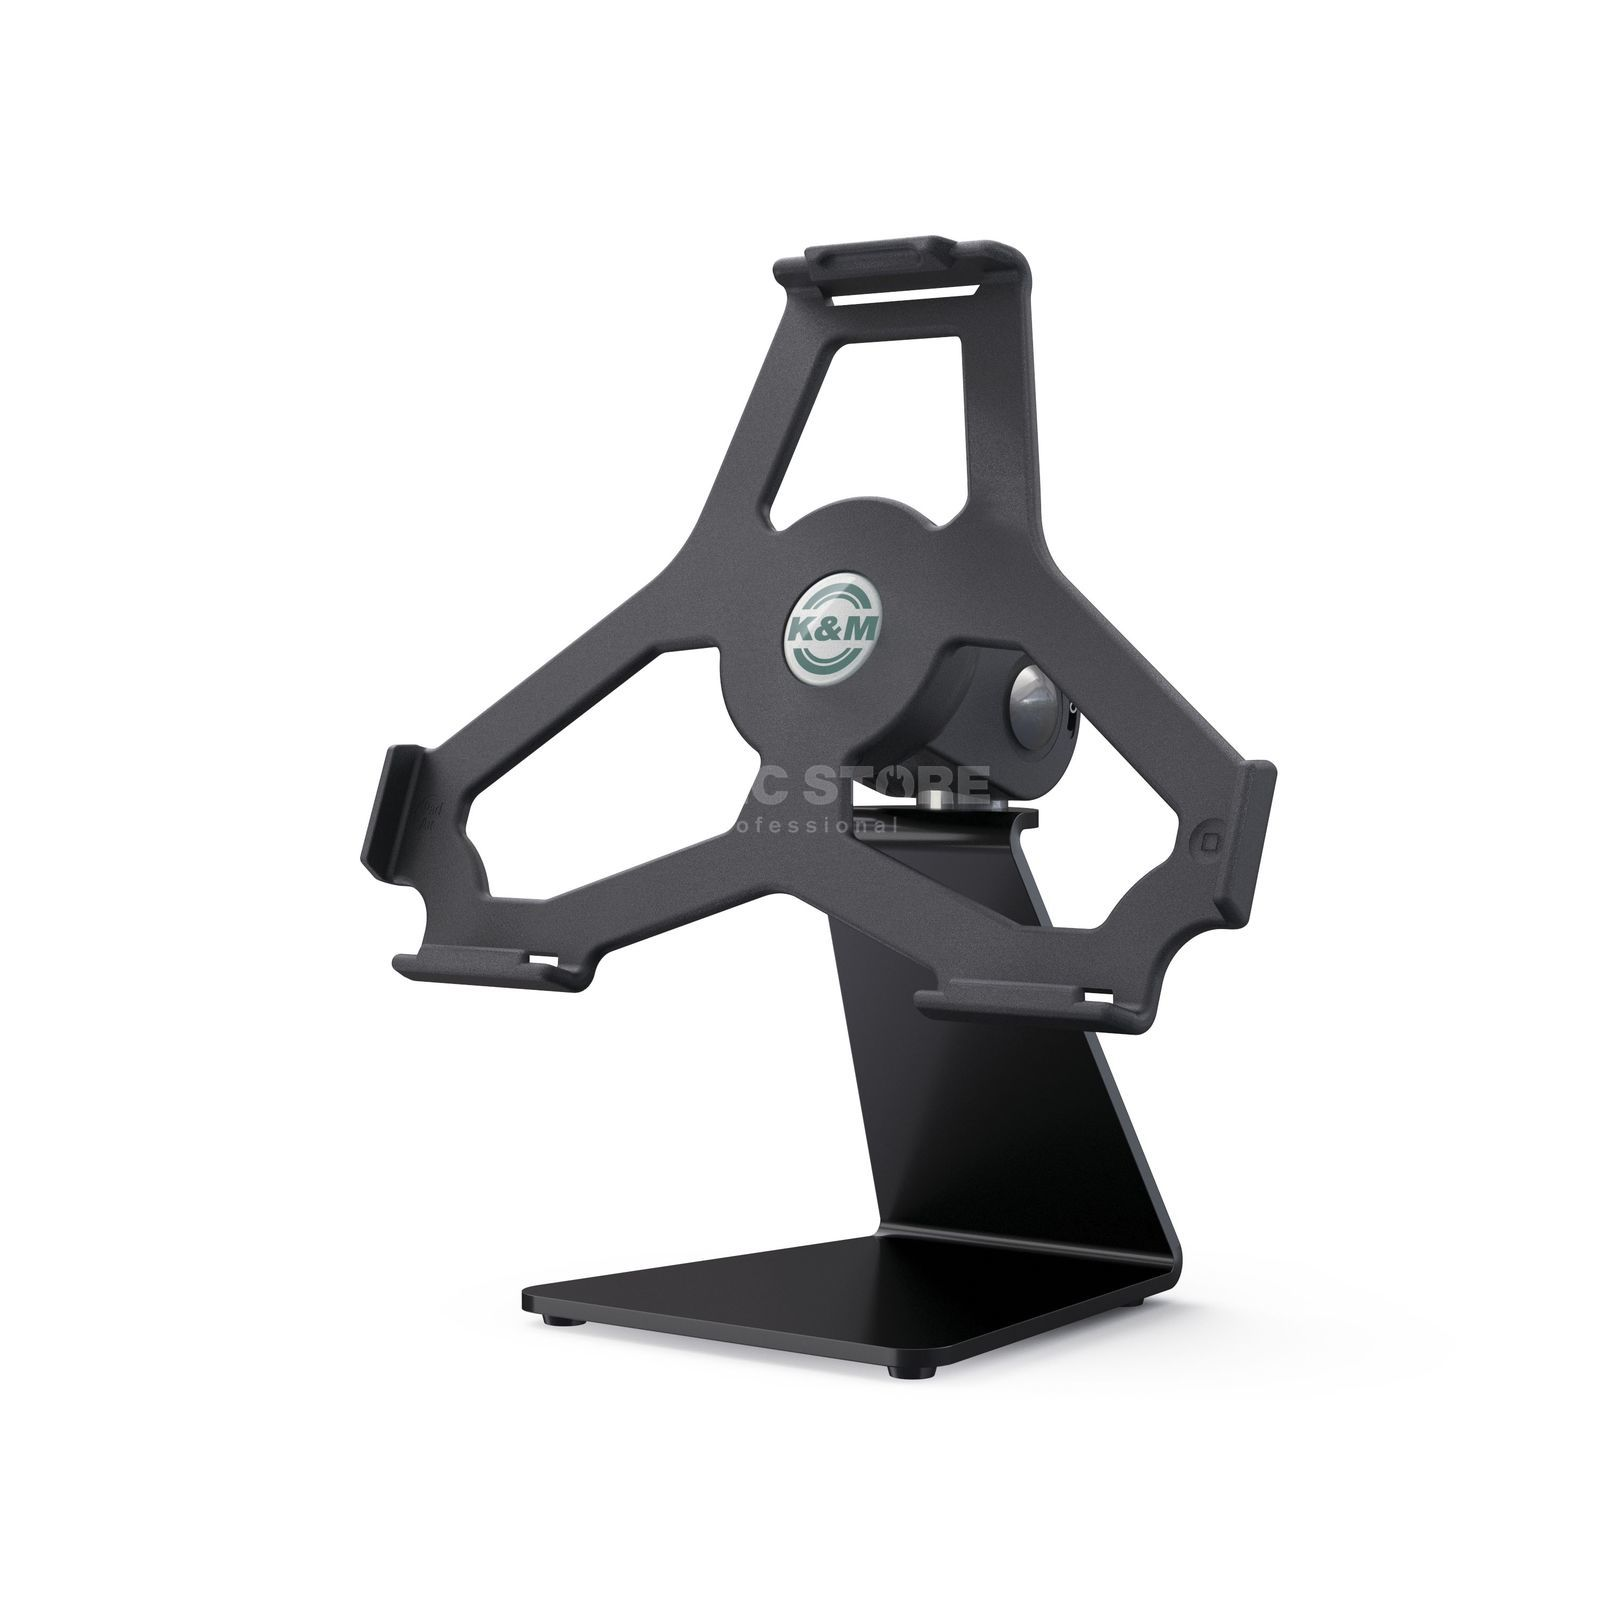 König & Meyer 19757 iPad Air 2 Table Stand black Produktbillede